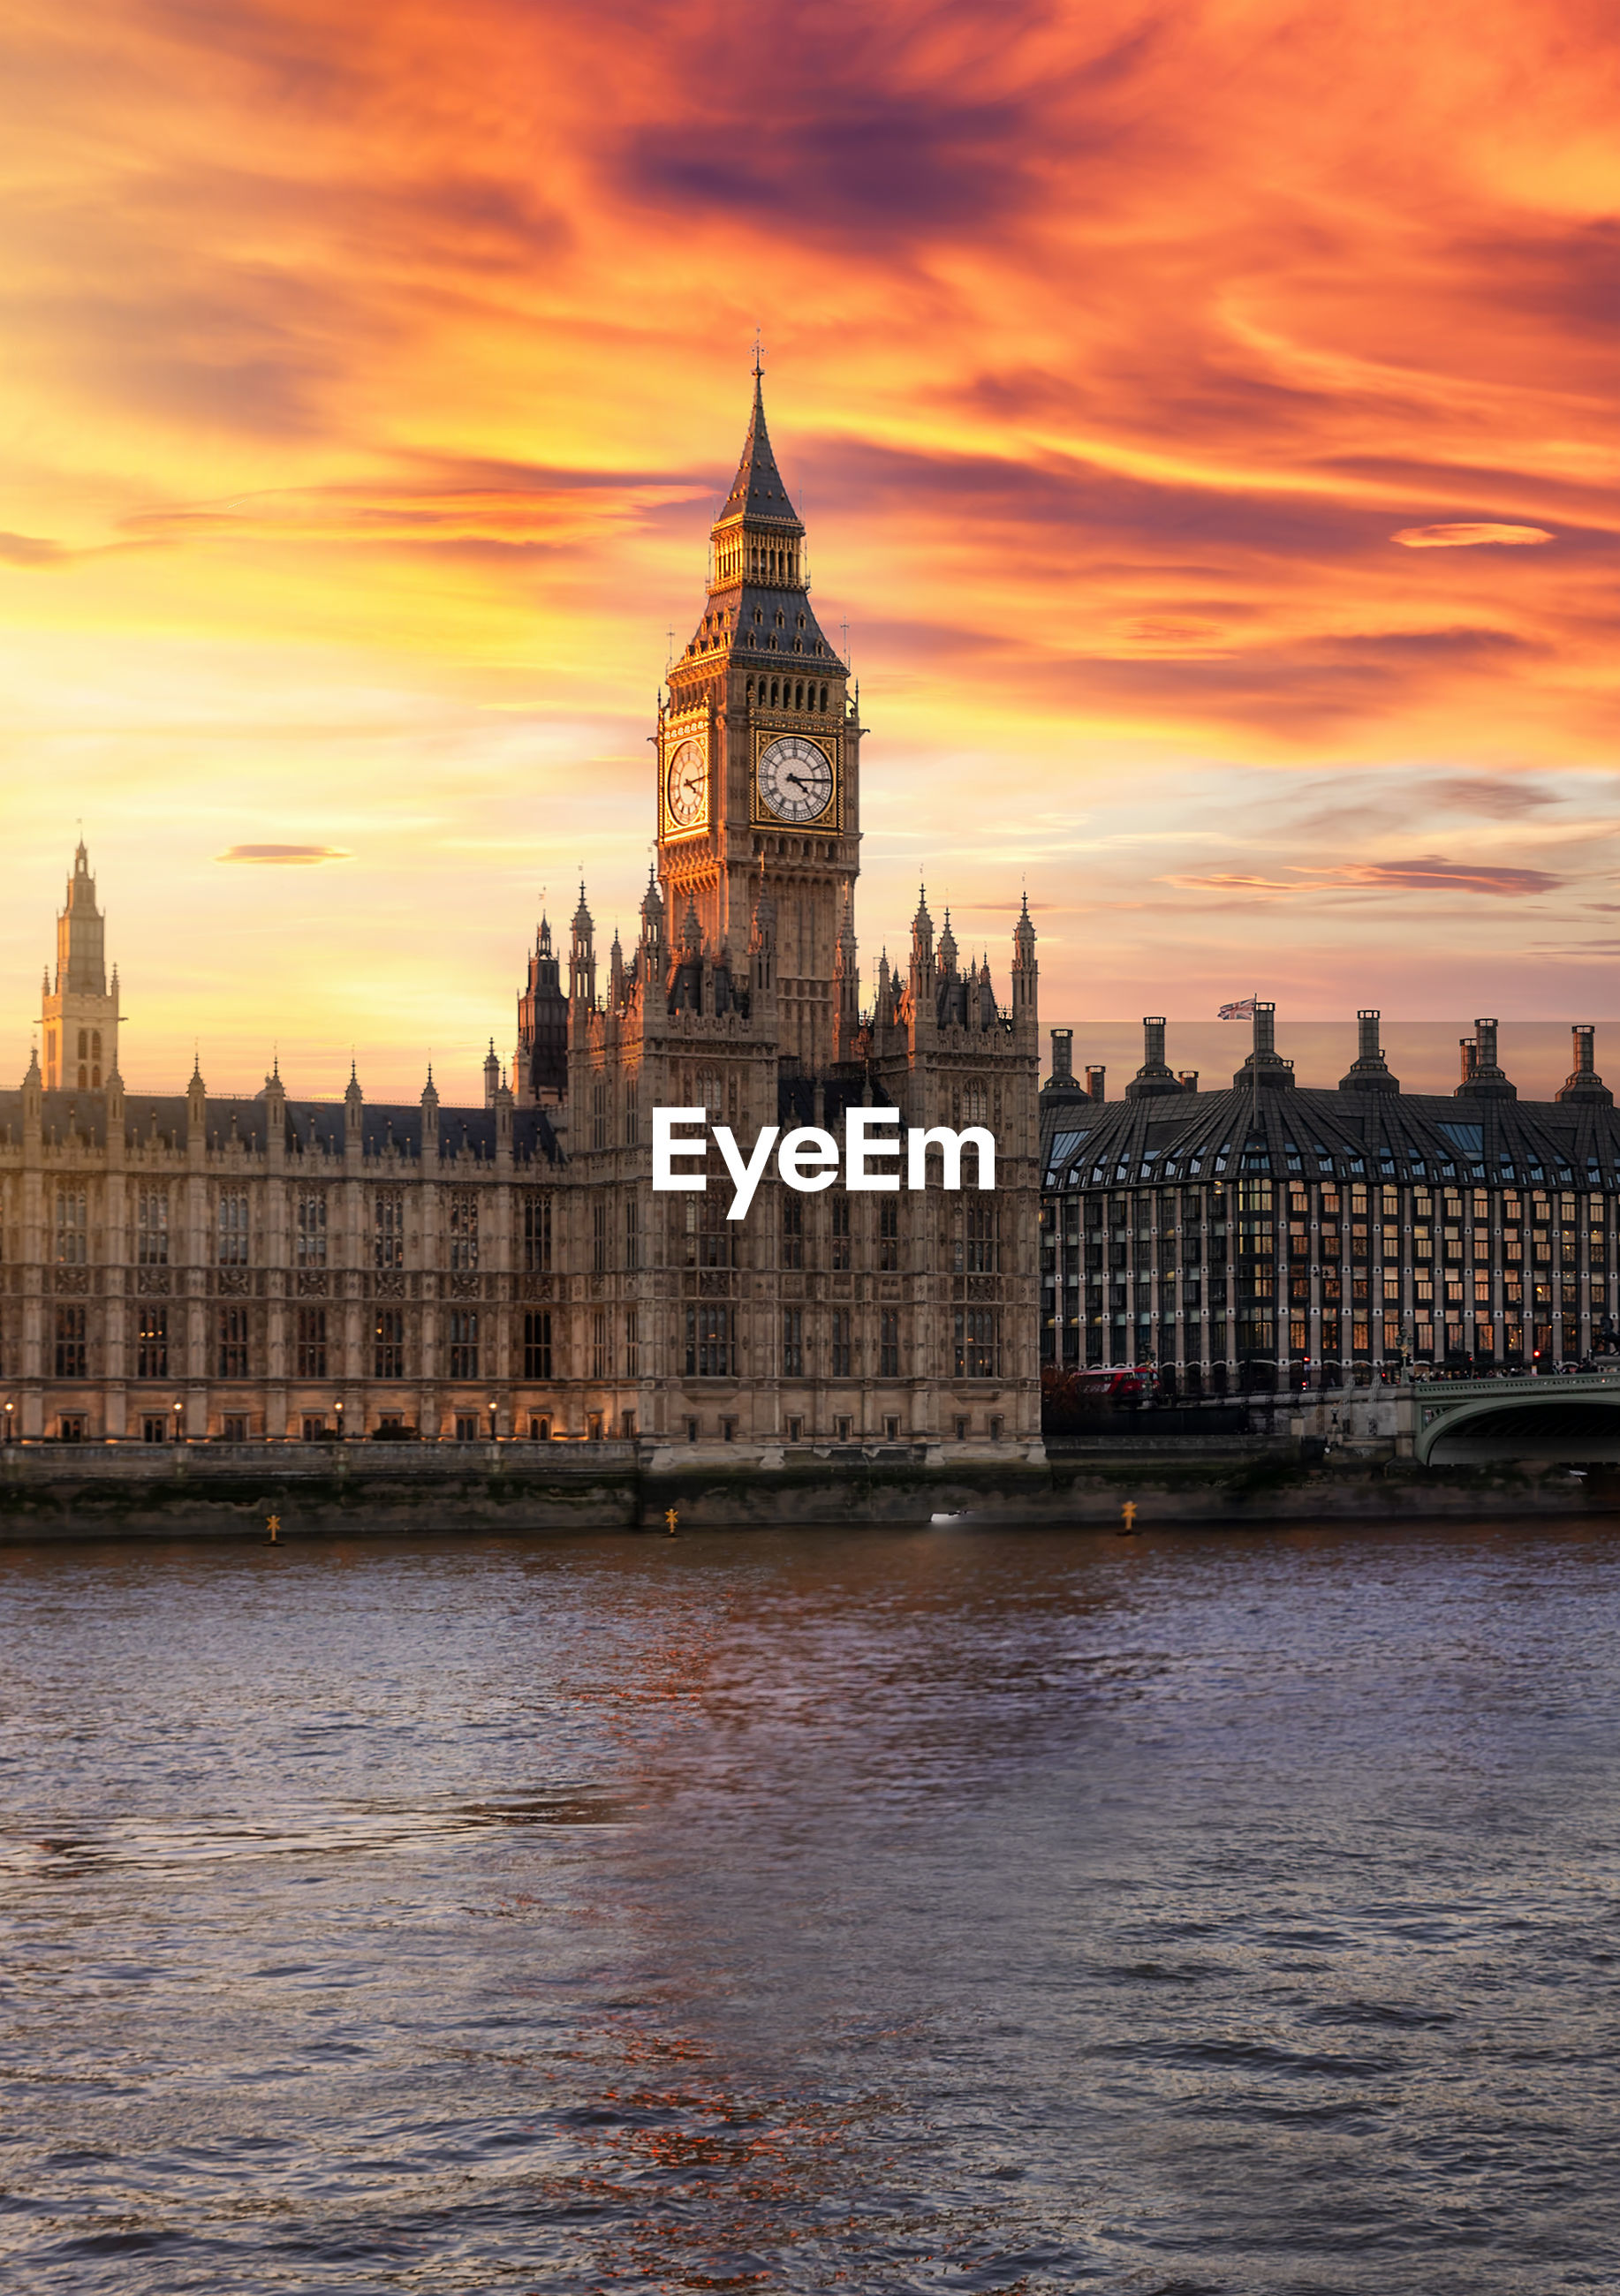 Big ben by thames river against cloudy sky during sunset